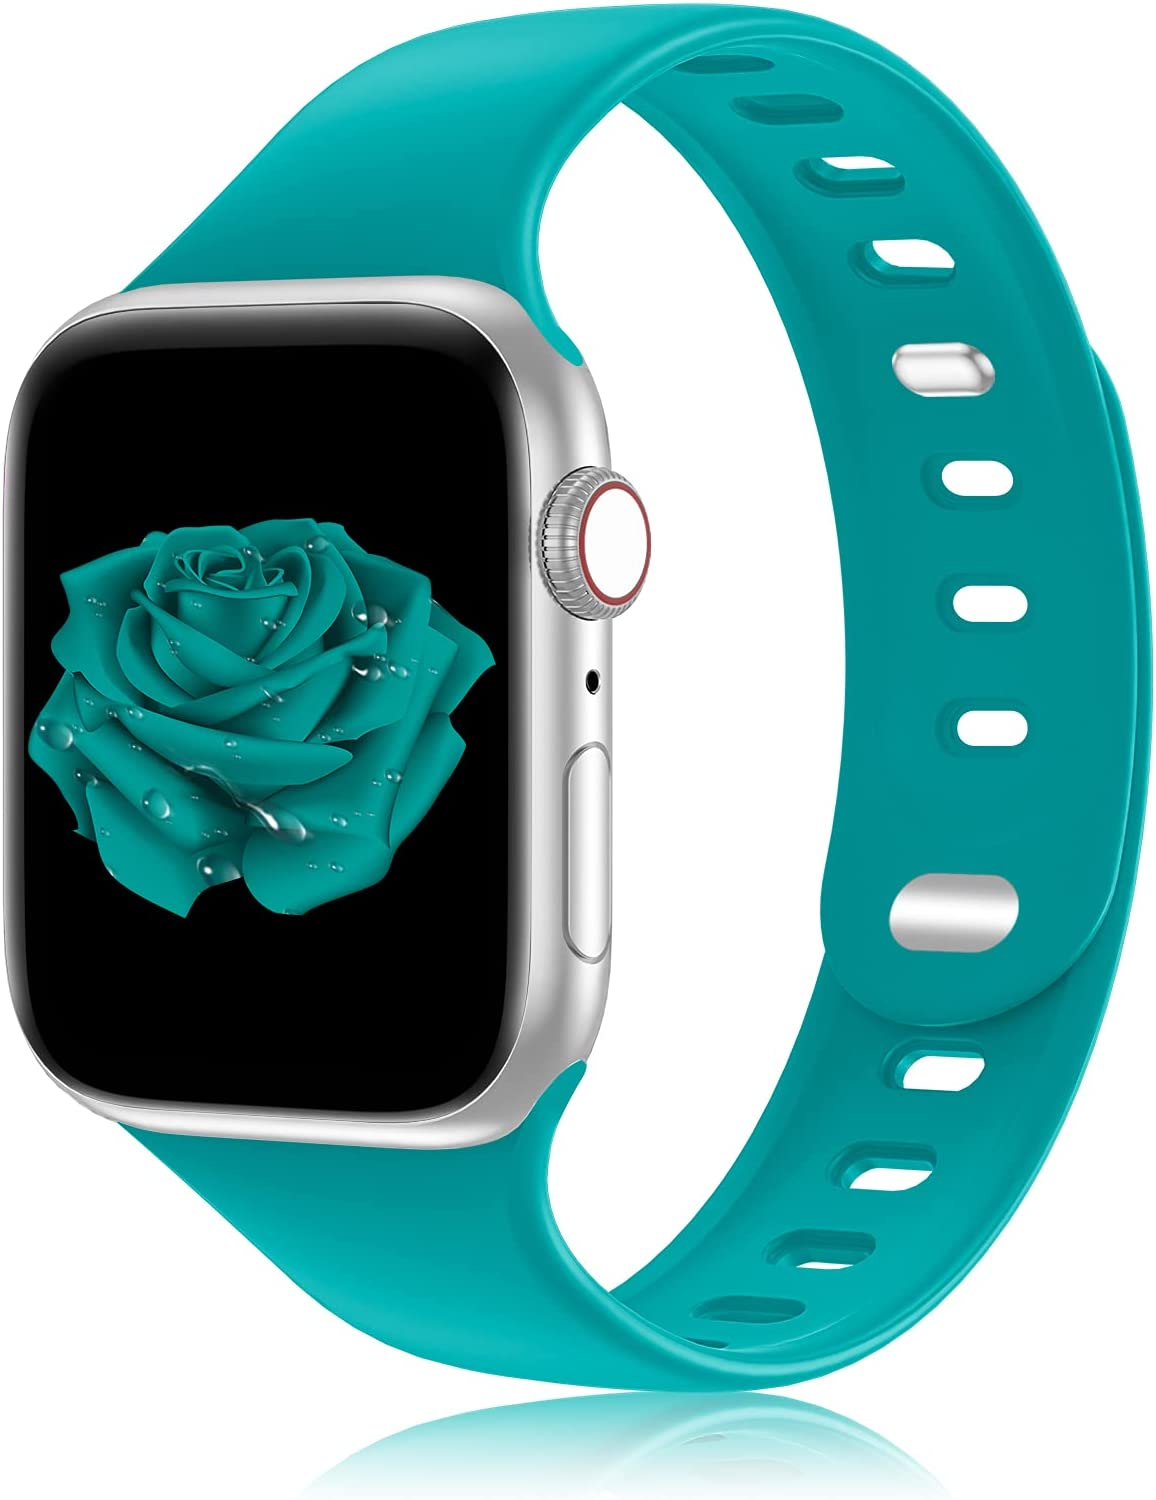 iWabcertoo Sport Silicone Band Compatible with Apple Watch Band 38MM 40MM 42MM 44MM Women and Men,Unique Double Nail Design Soft Bands for iWatch Series 6 5 4 3 2 1 SE